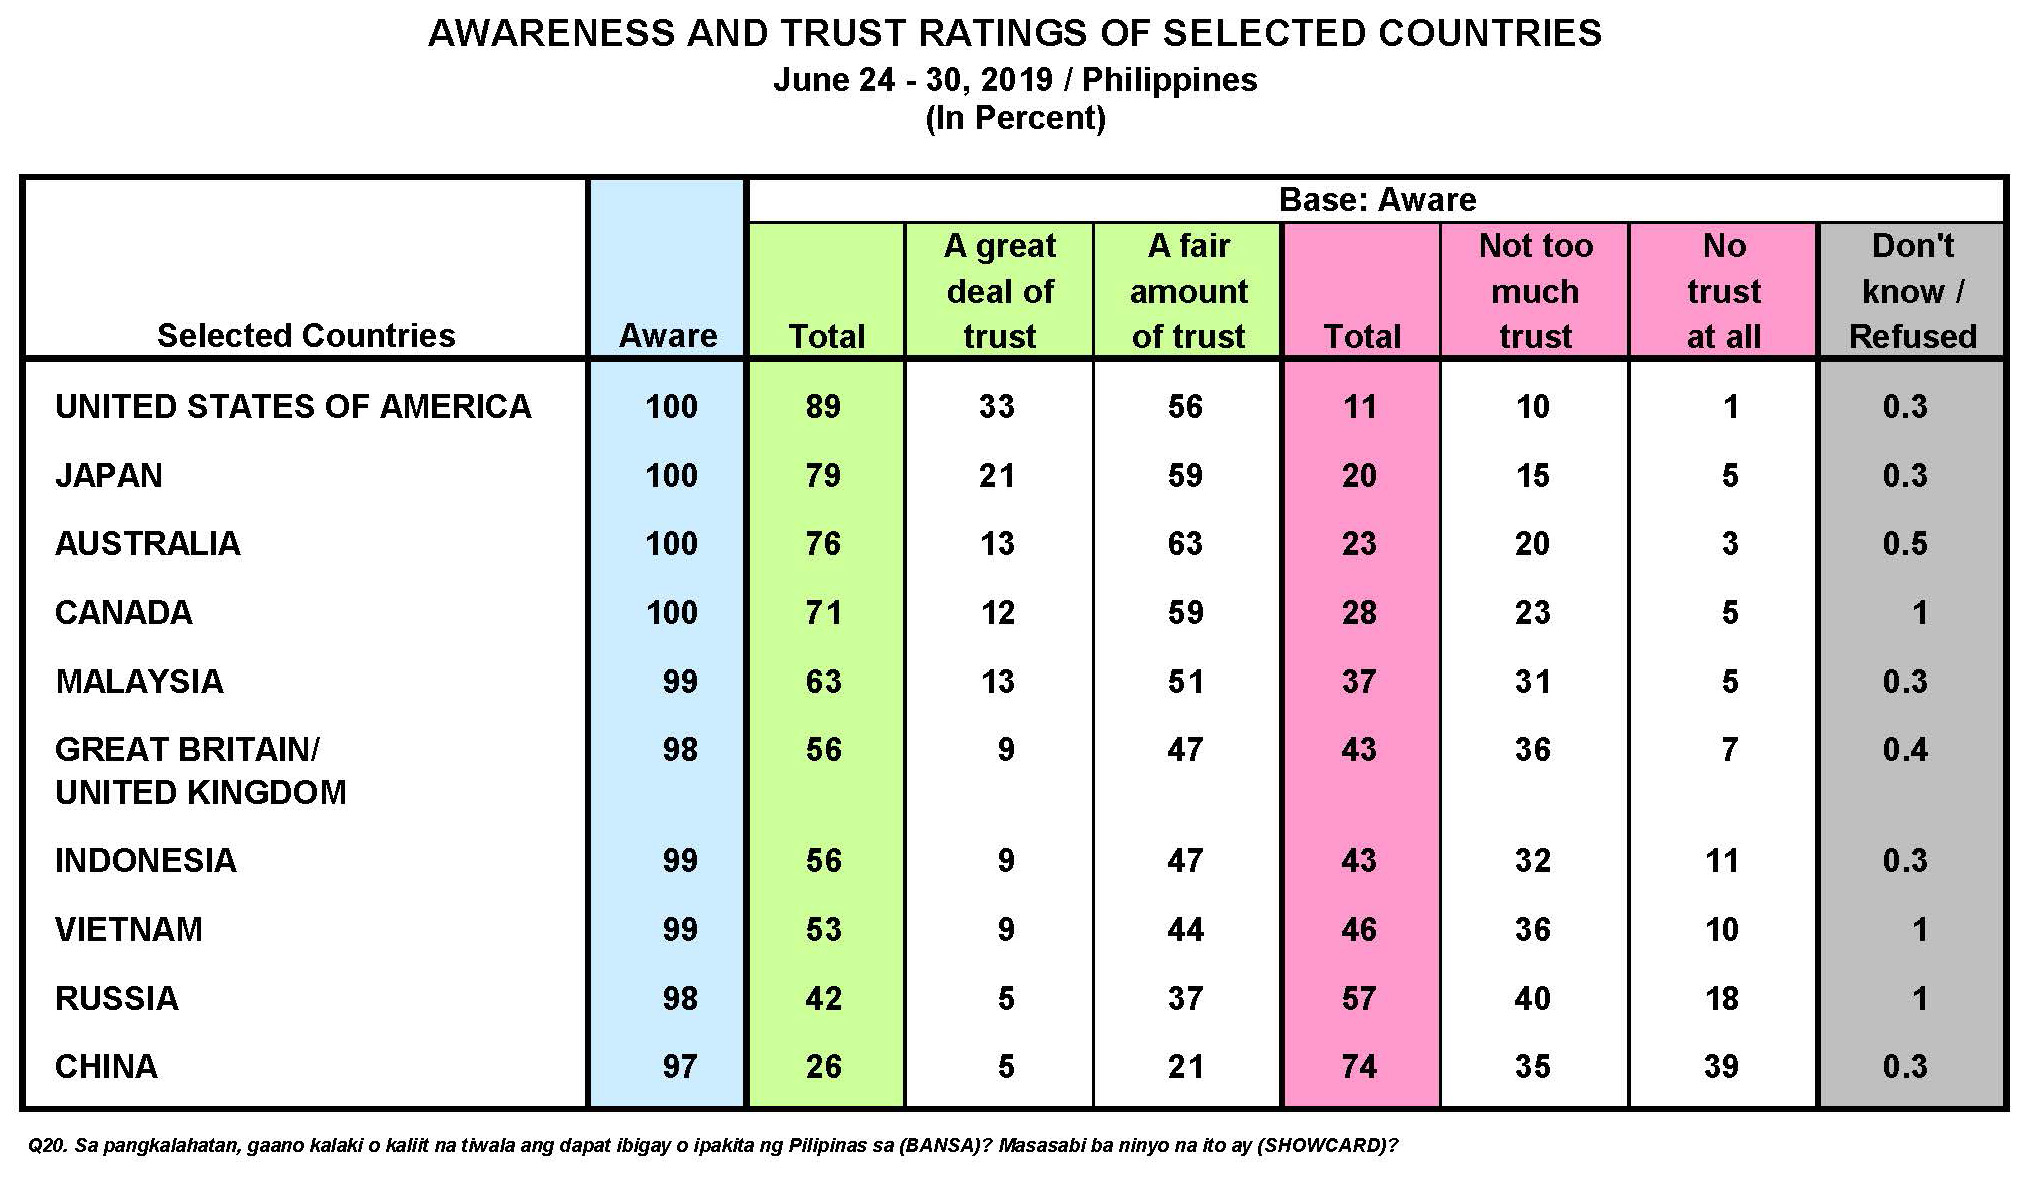 June 2019 Nationwide Survey on Public Trust in Selected Countries and Public Opinion on the Recto Bank Incident